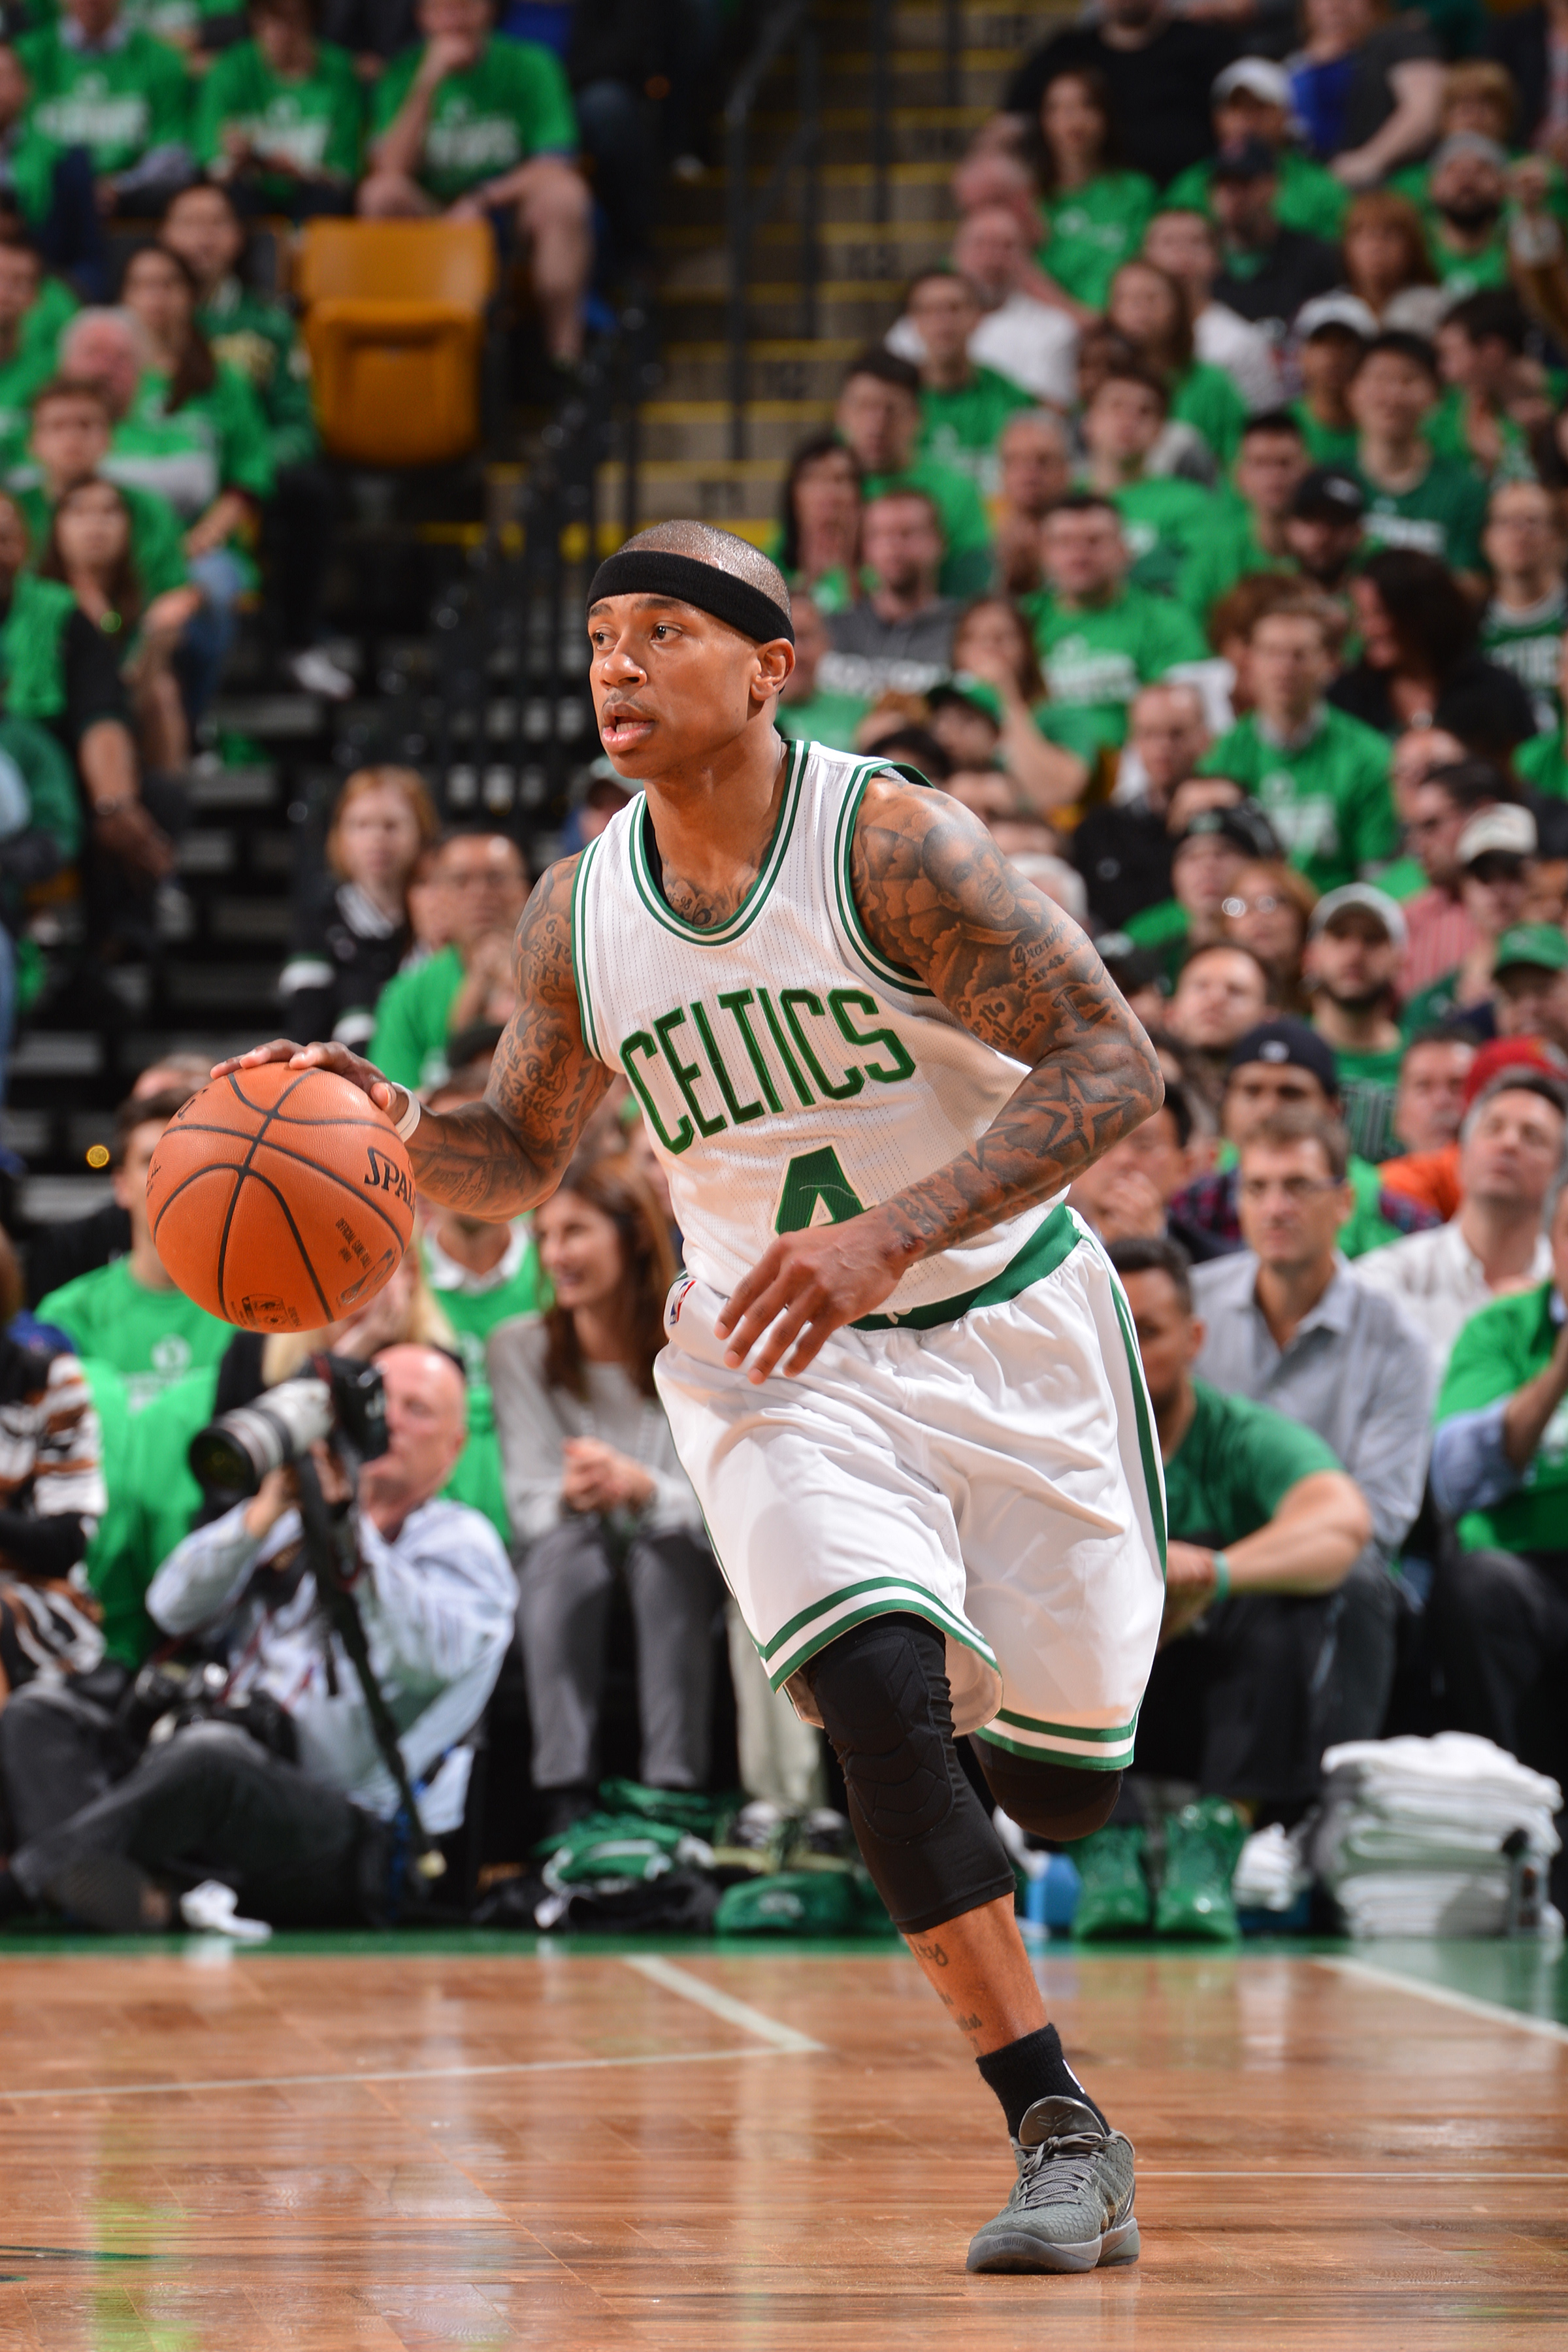 BOSTON, MA - APRIL 22: Isaiah Thomas #4 of the Boston Celtics handles the ball against the Atlanta Hawks in Game Three of the Eastern Conference Quarterfinals of the 2016 NBA Playoffs on April 22, 2016 at the TD Garden in Boston, Massachusetts.   (Photo b